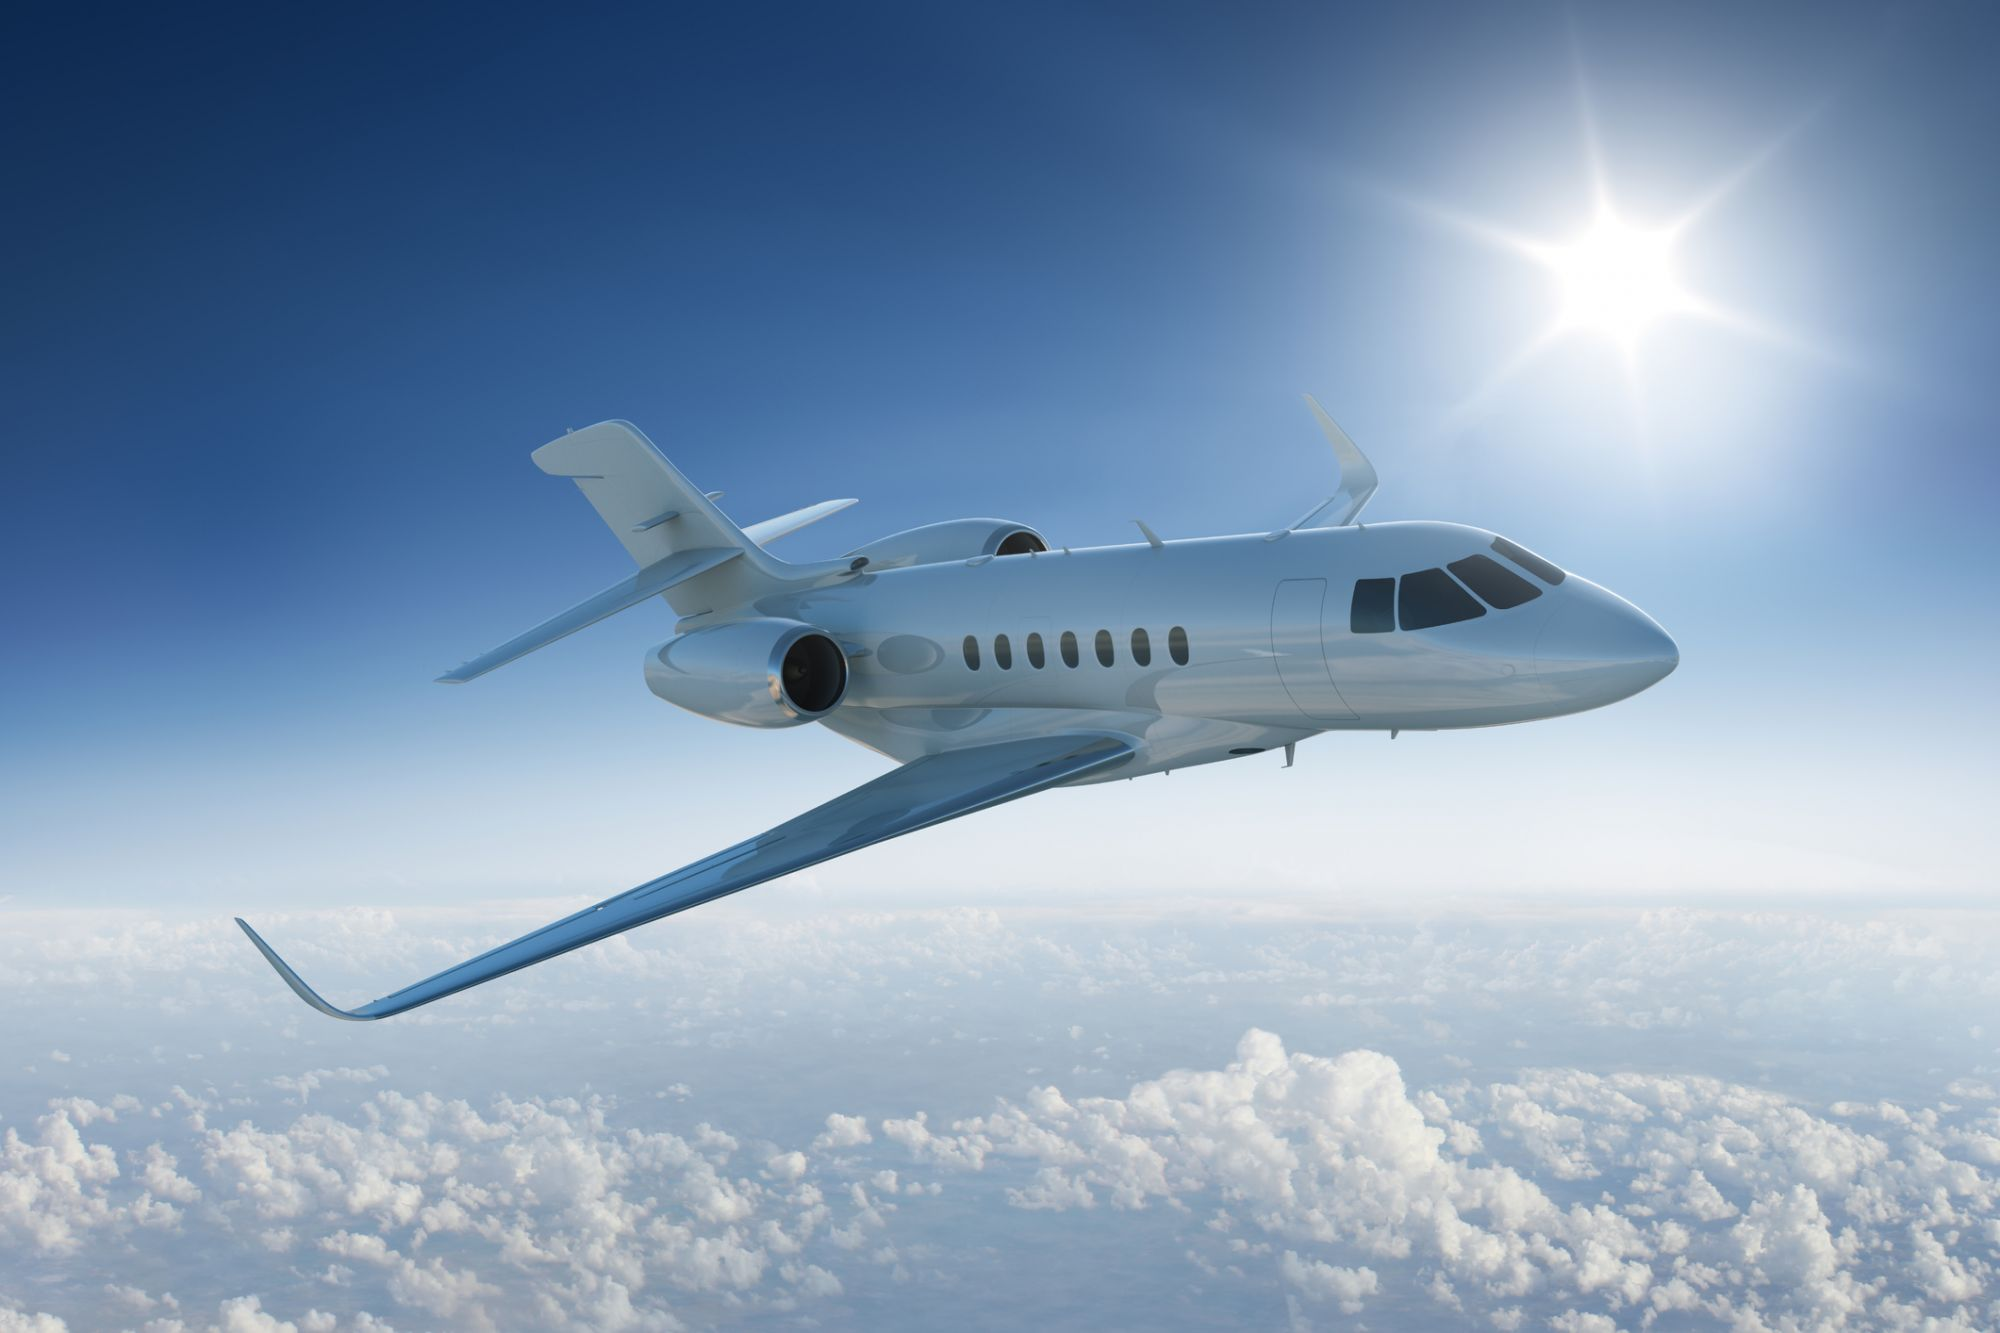 Private jet flies past sun - in blue sky above the clouds